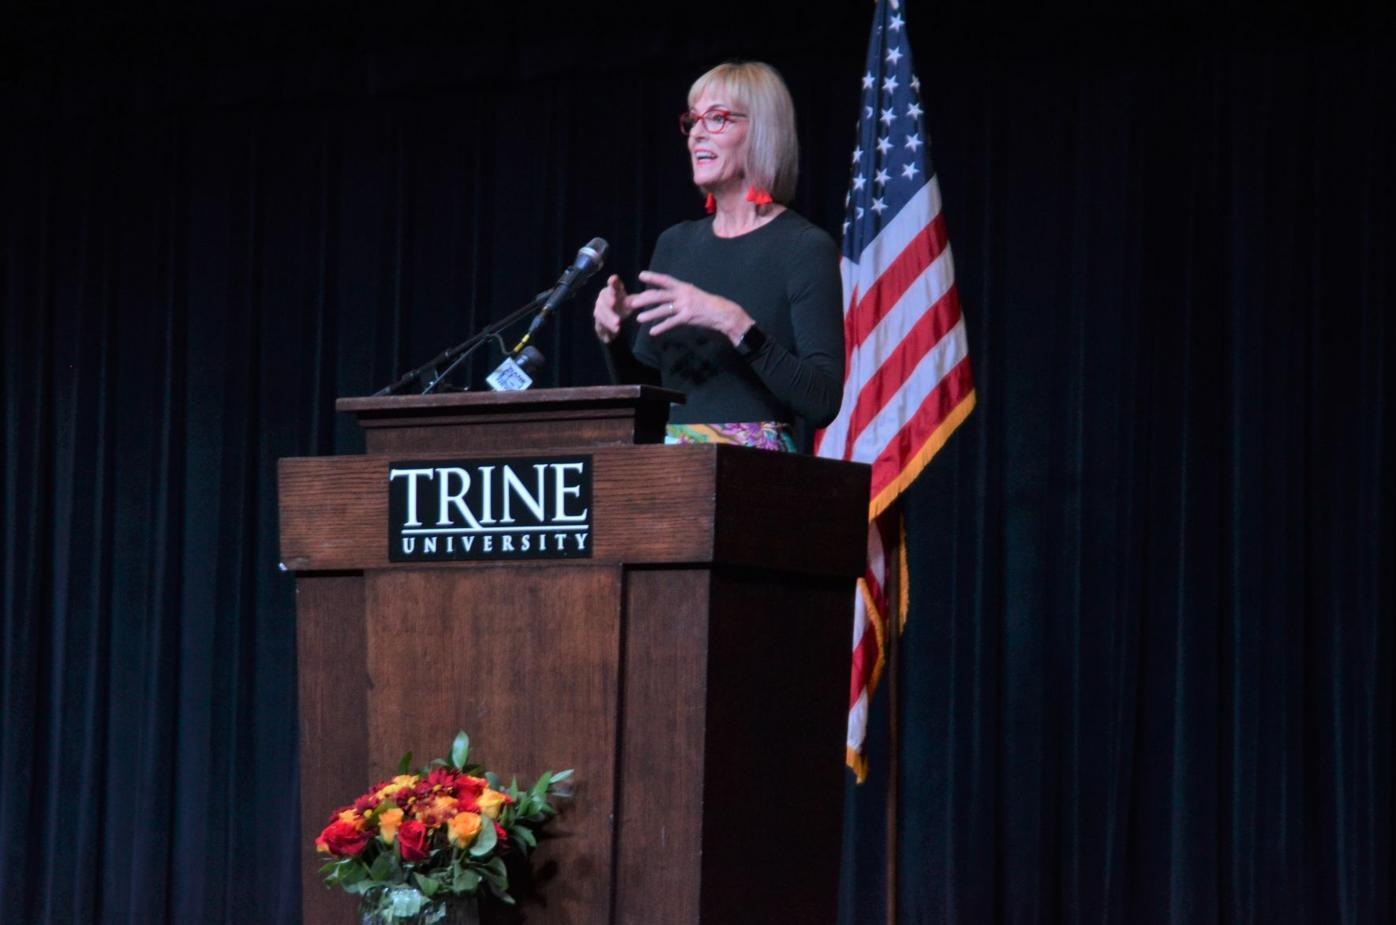 Lt. Gov. Suzanne Crouch